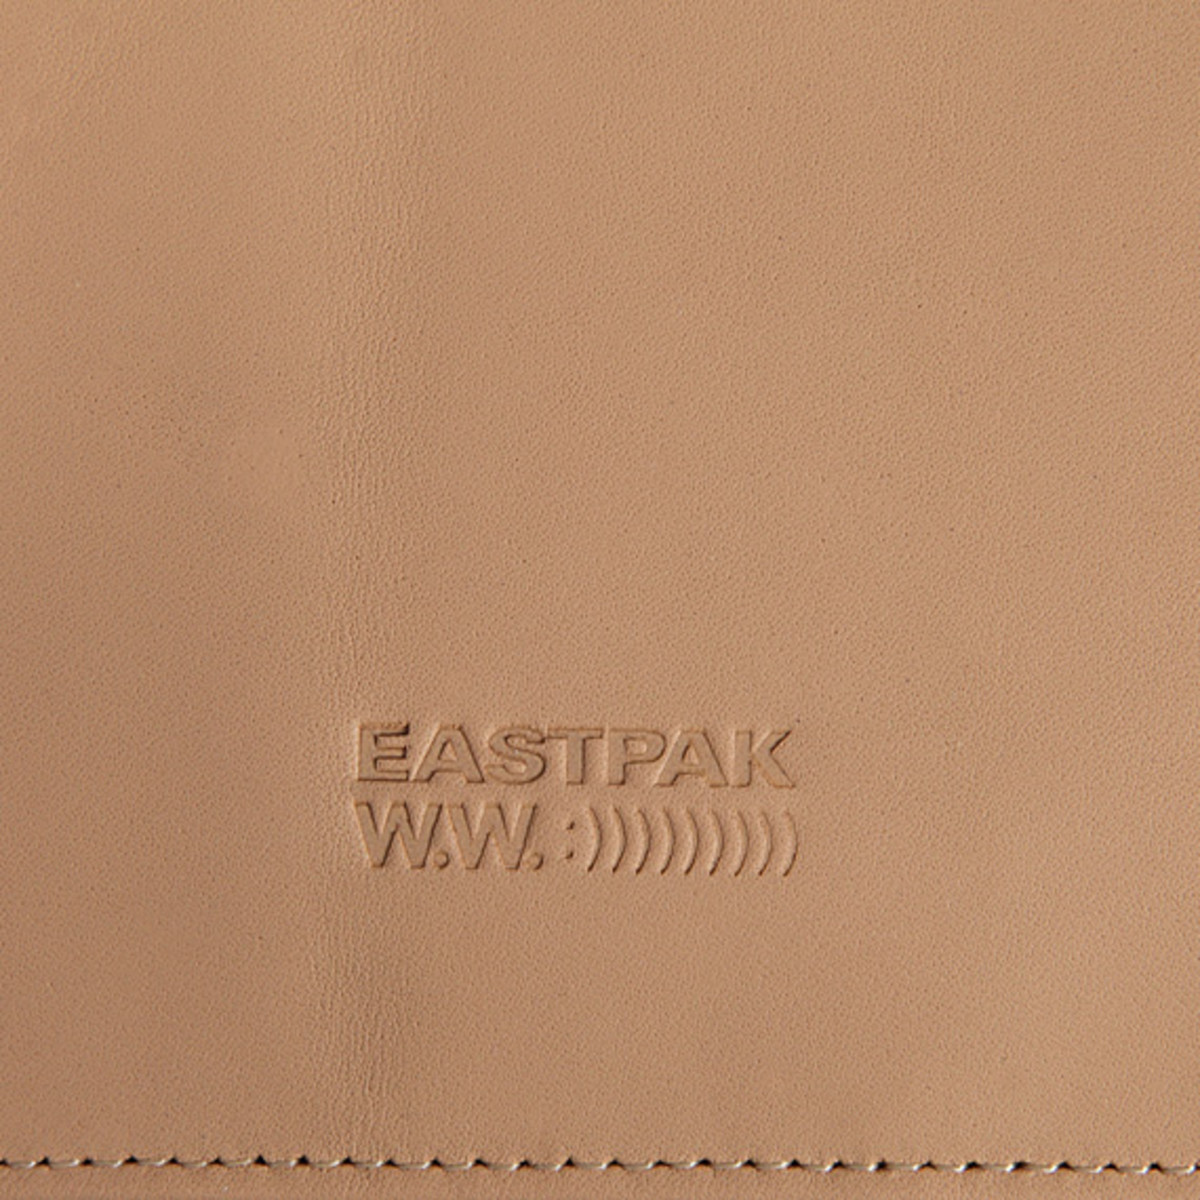 wood-wood-for-eastpak-modulation-accessories-bags-collection-spring-summer-2013-ek870-07